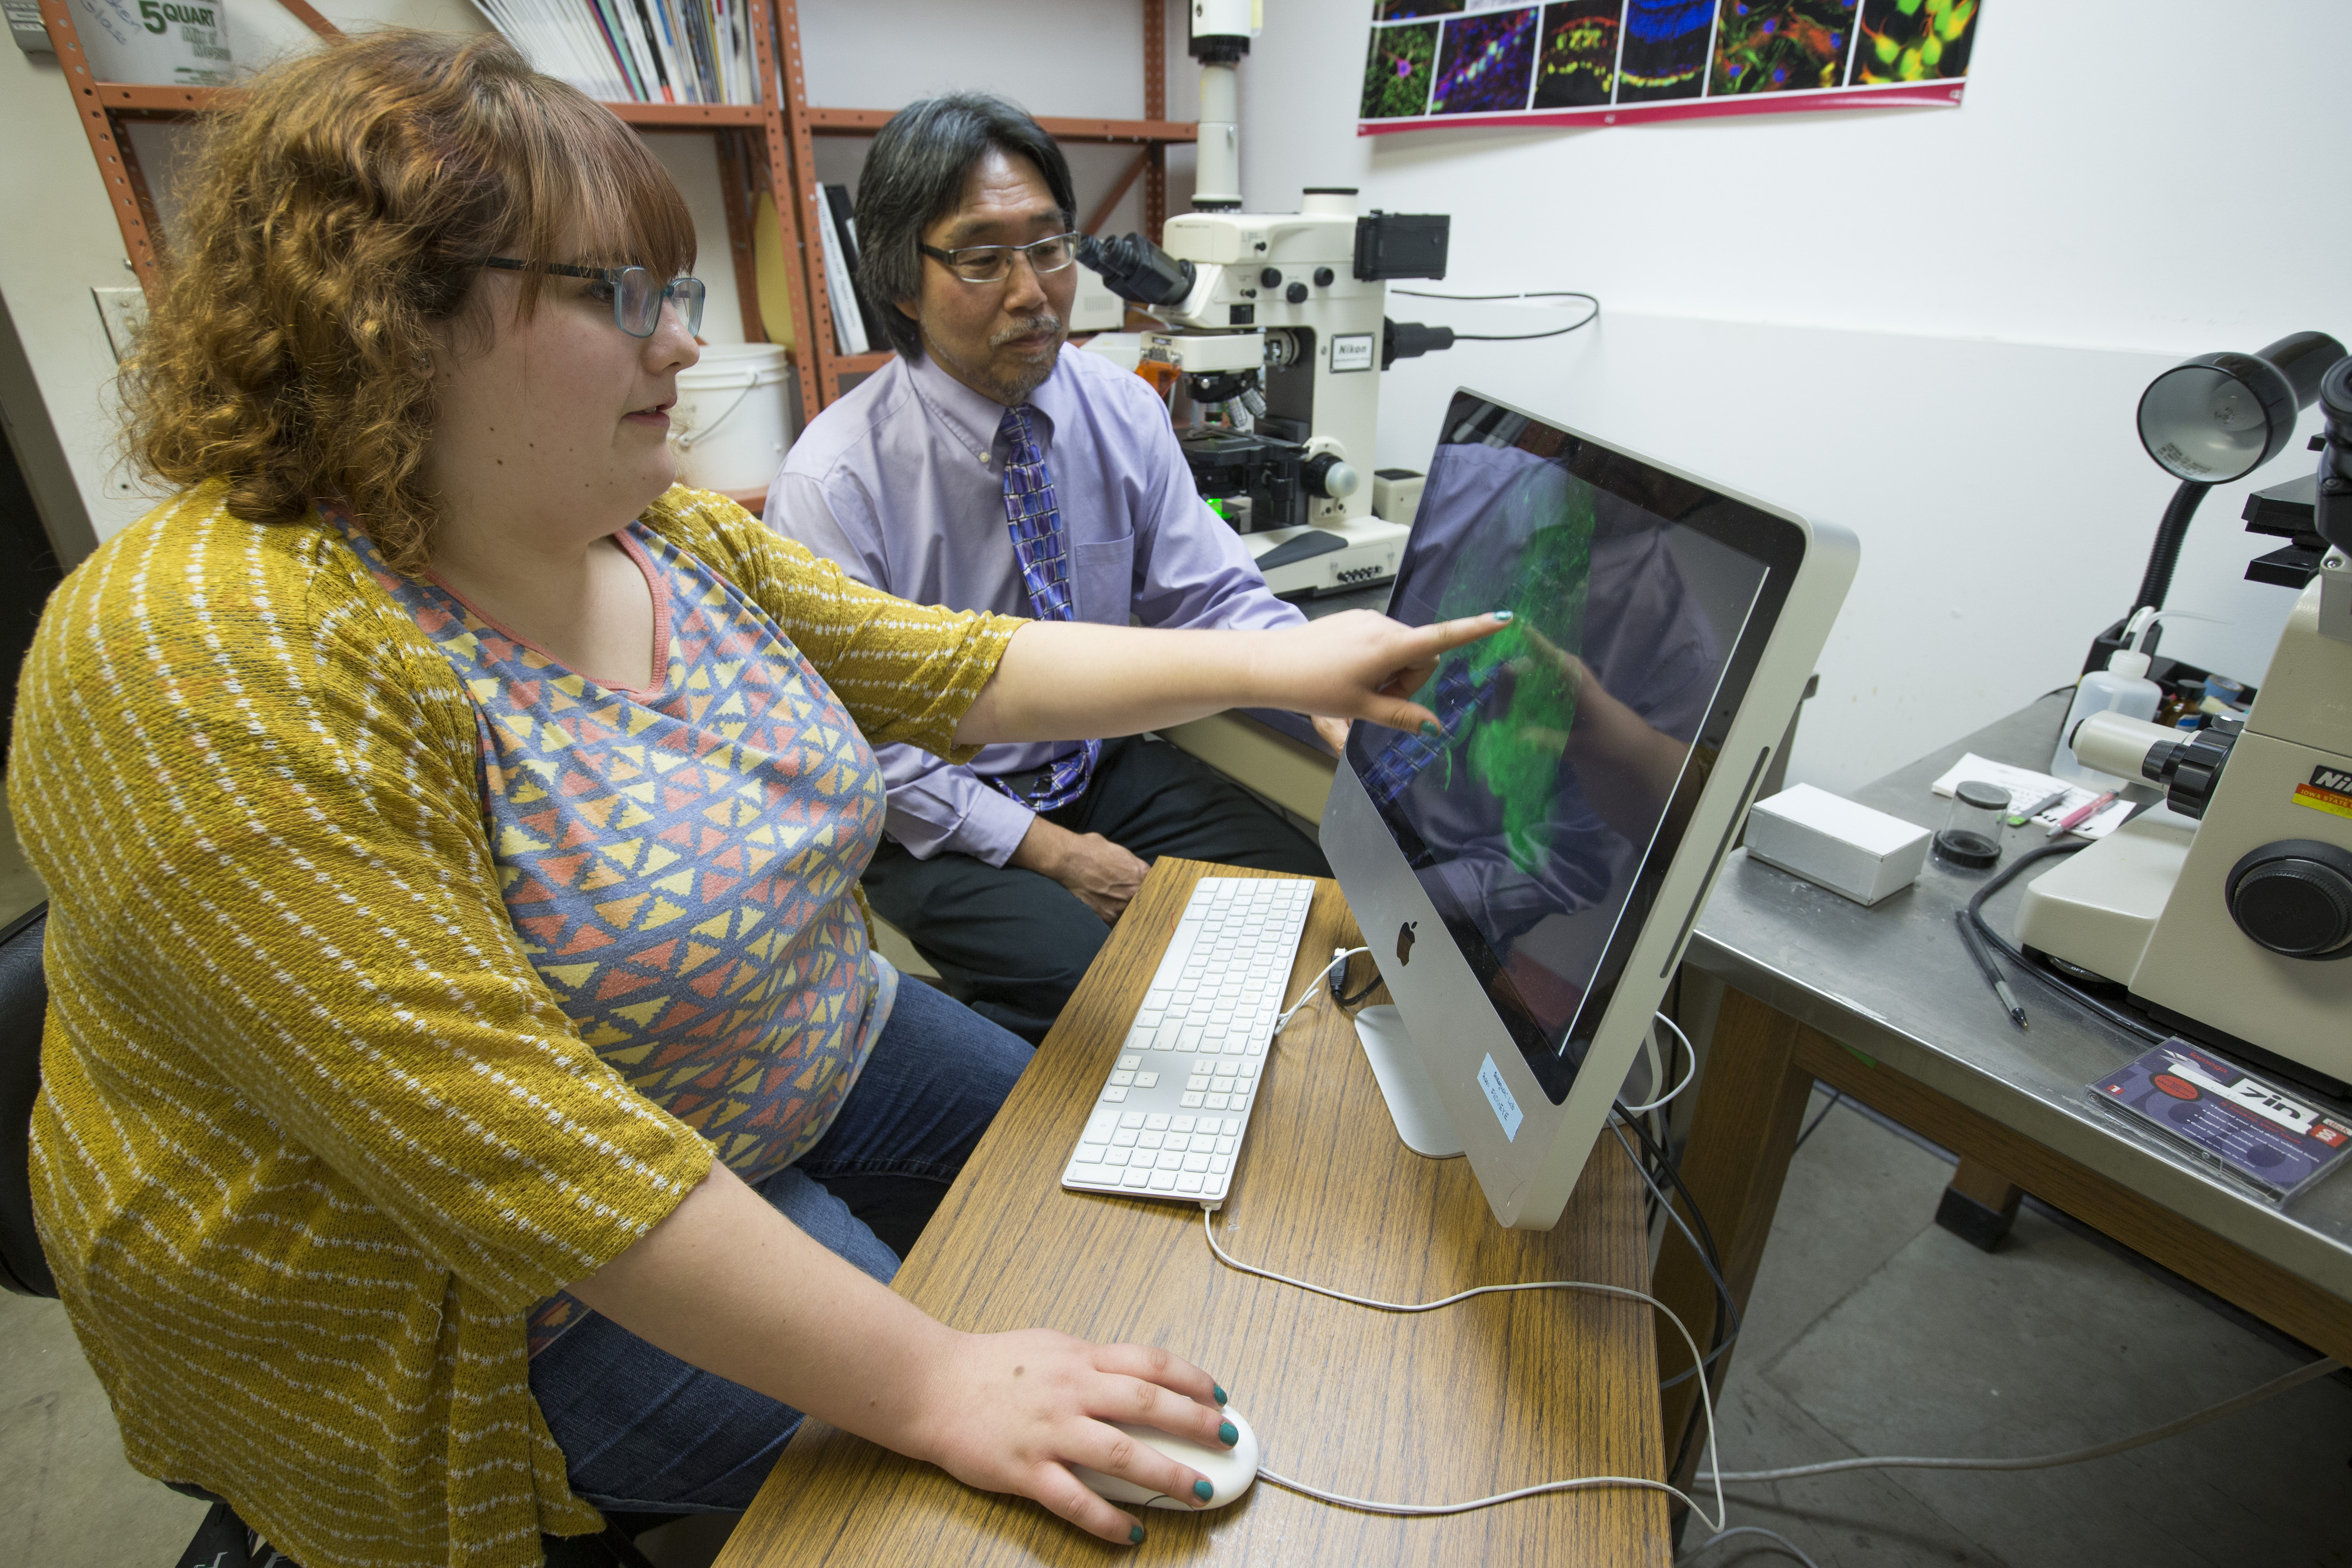 Kaelee Plante points at a computer image while Don Sakaguchi looks on. In the background are microscopes.